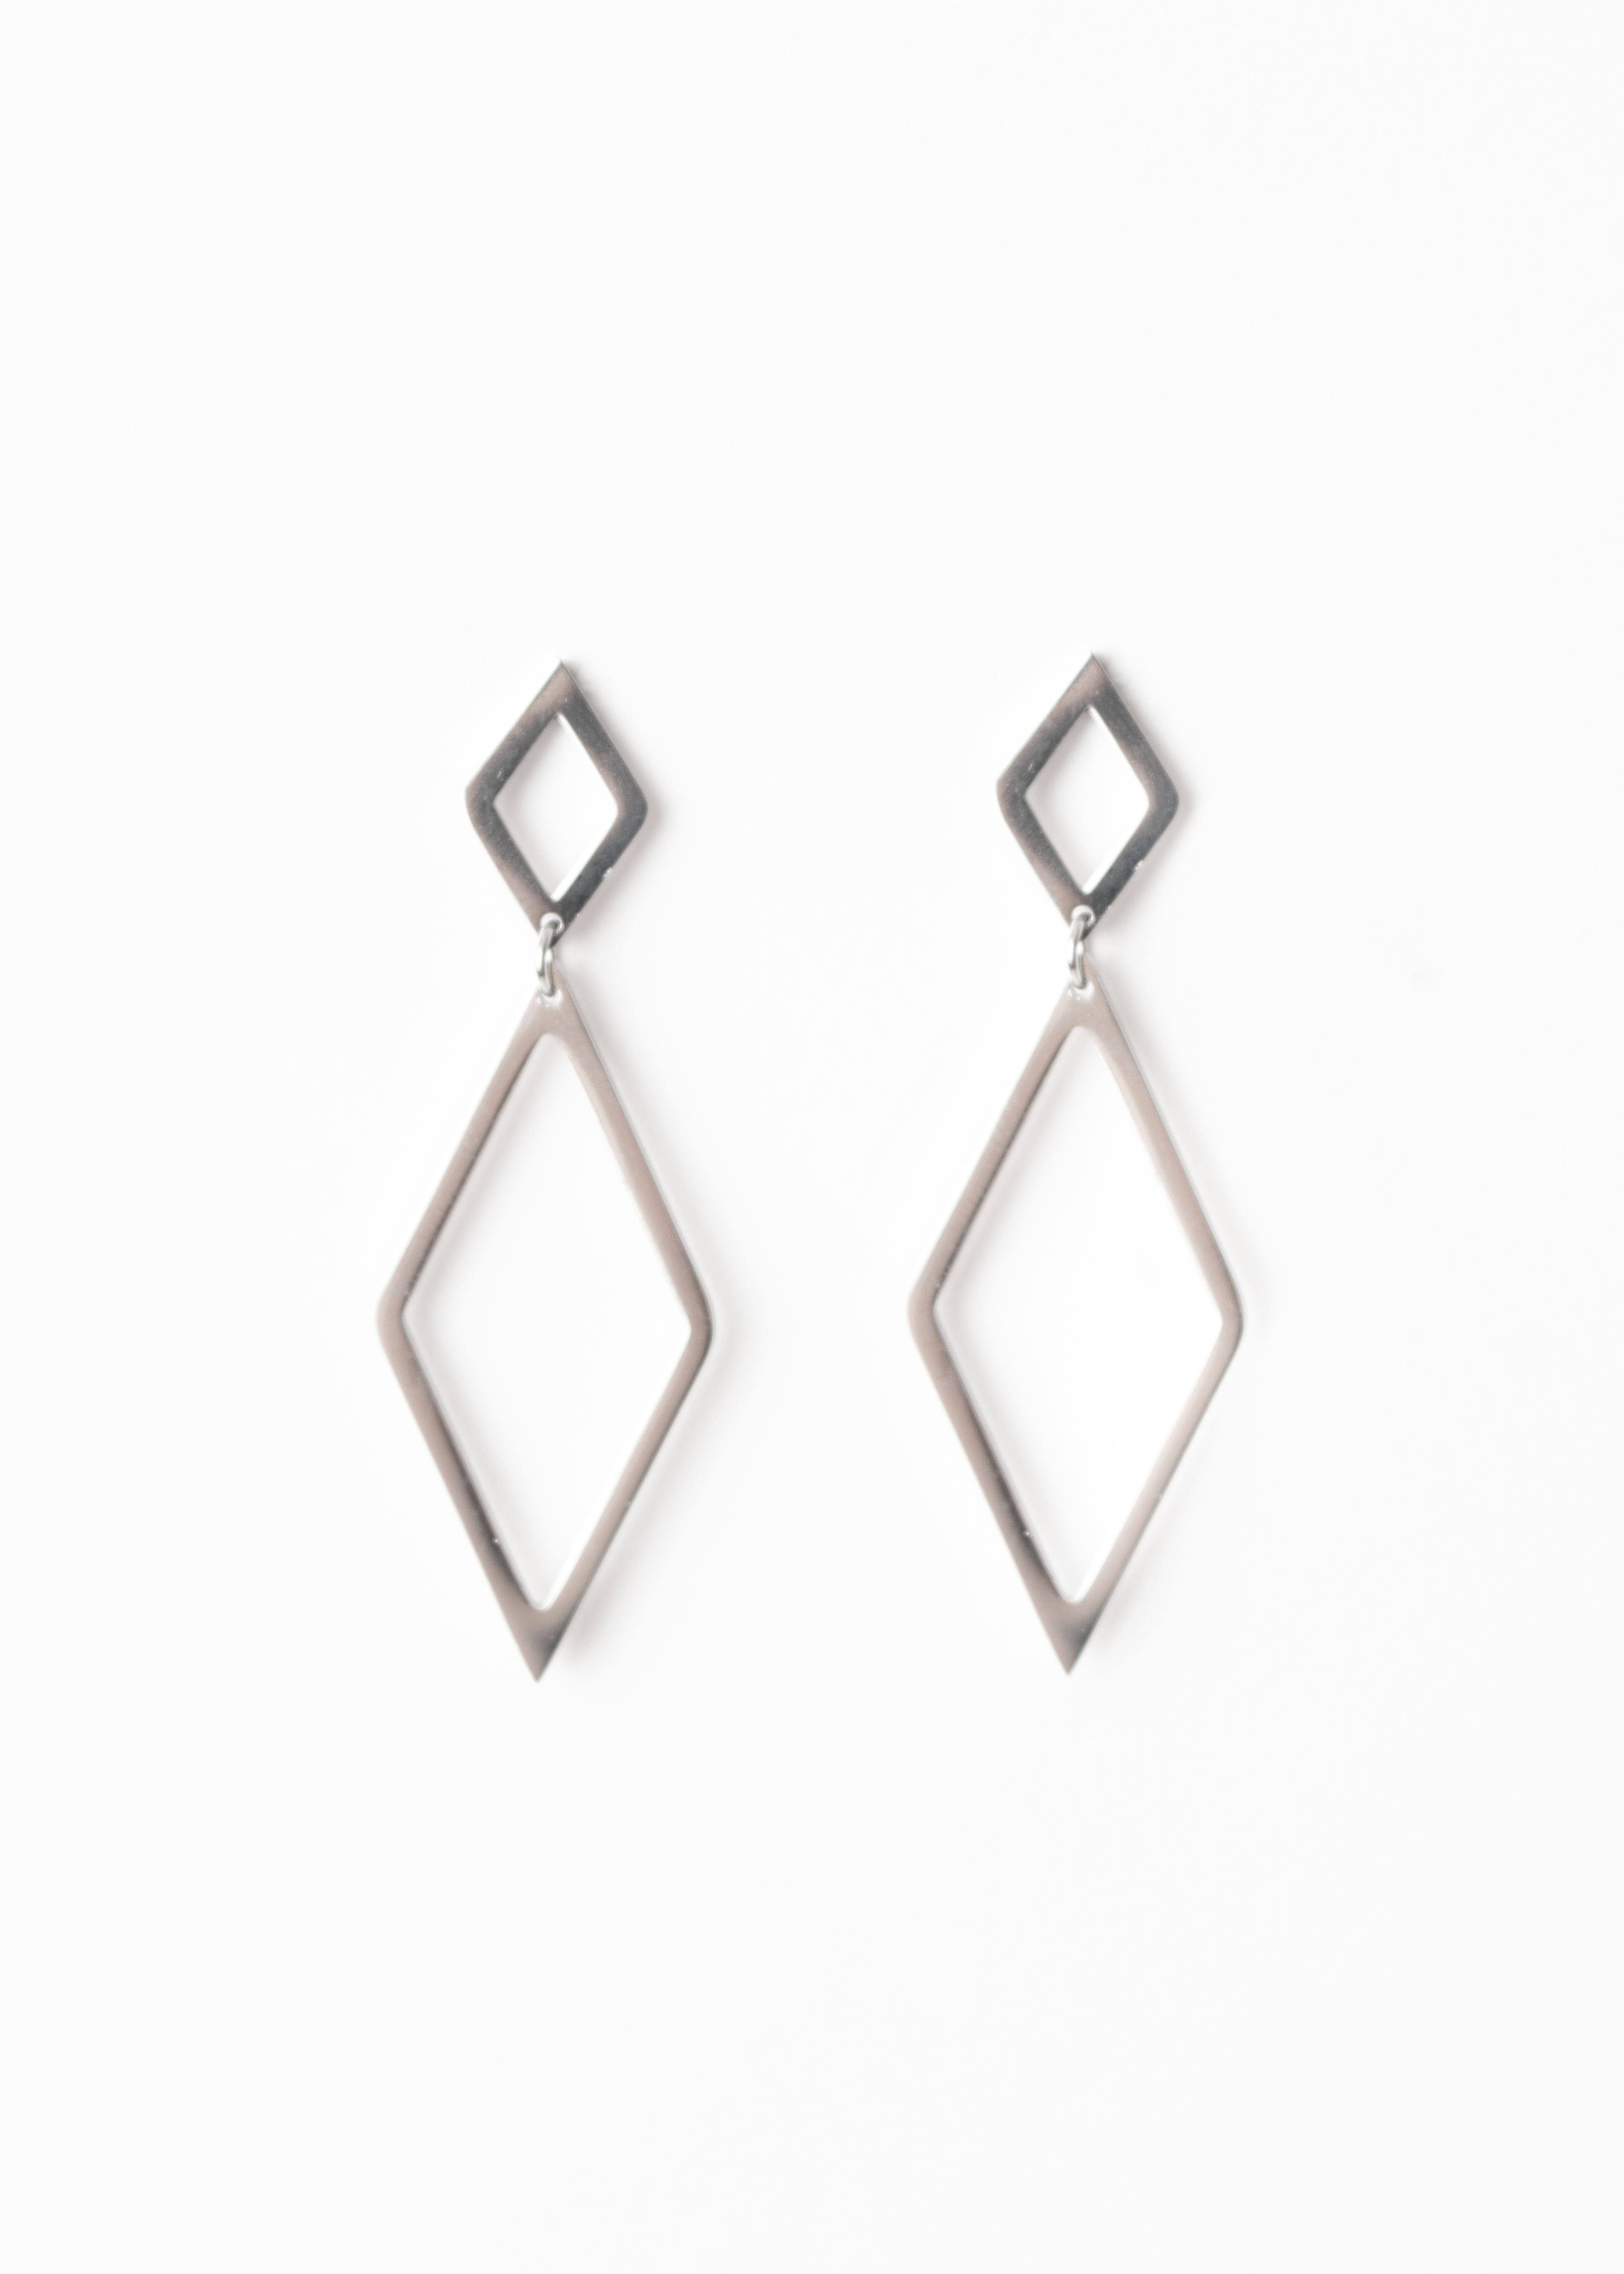 Beck & Boosh Therese Earrings Small Diamond Stud With Larger Diamond Dangling Below Plated Silver Stainless Steel